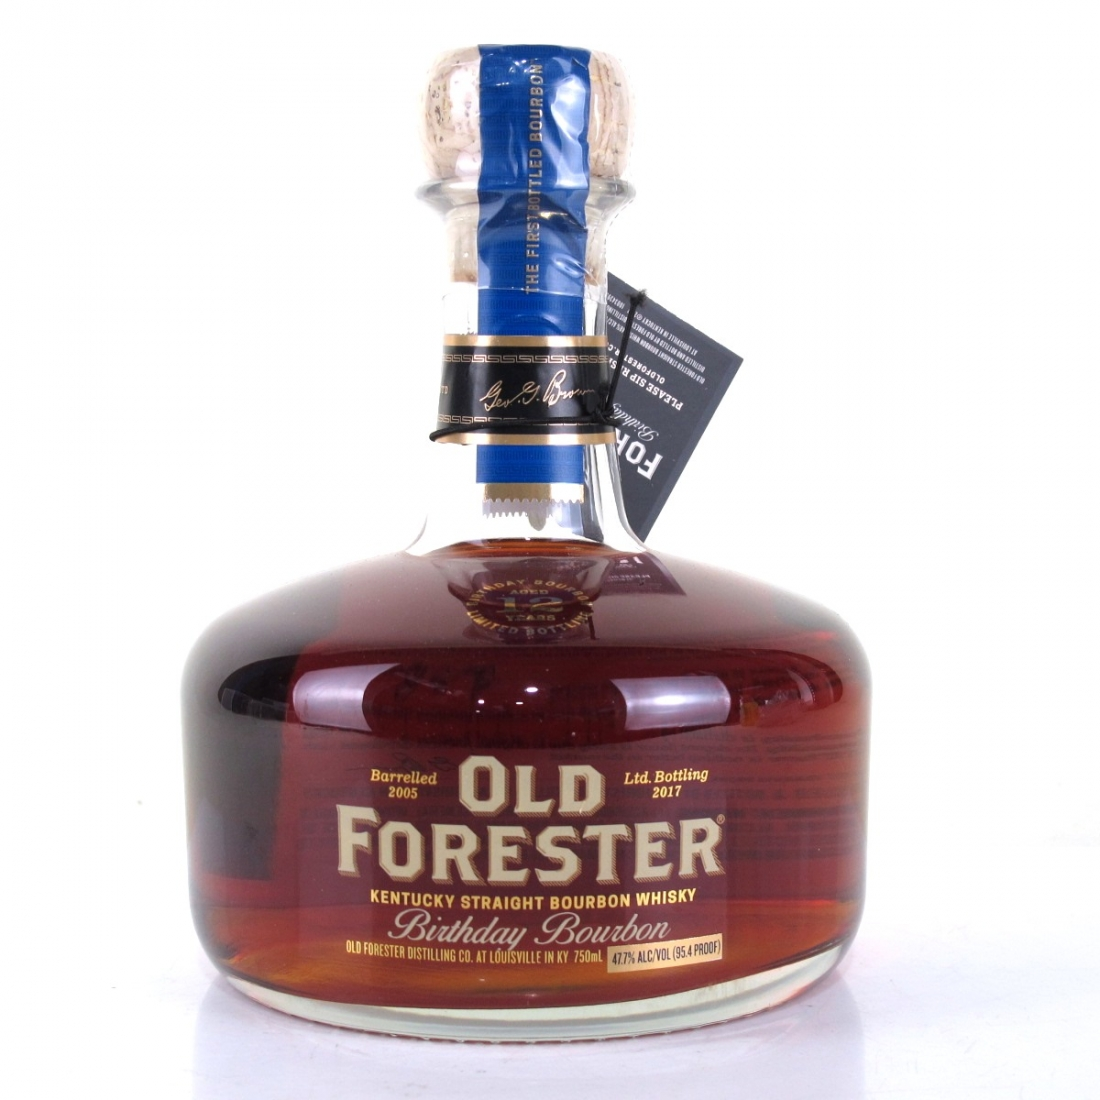 Old Forester 2005 Birthday Bourbon 12 Year Old